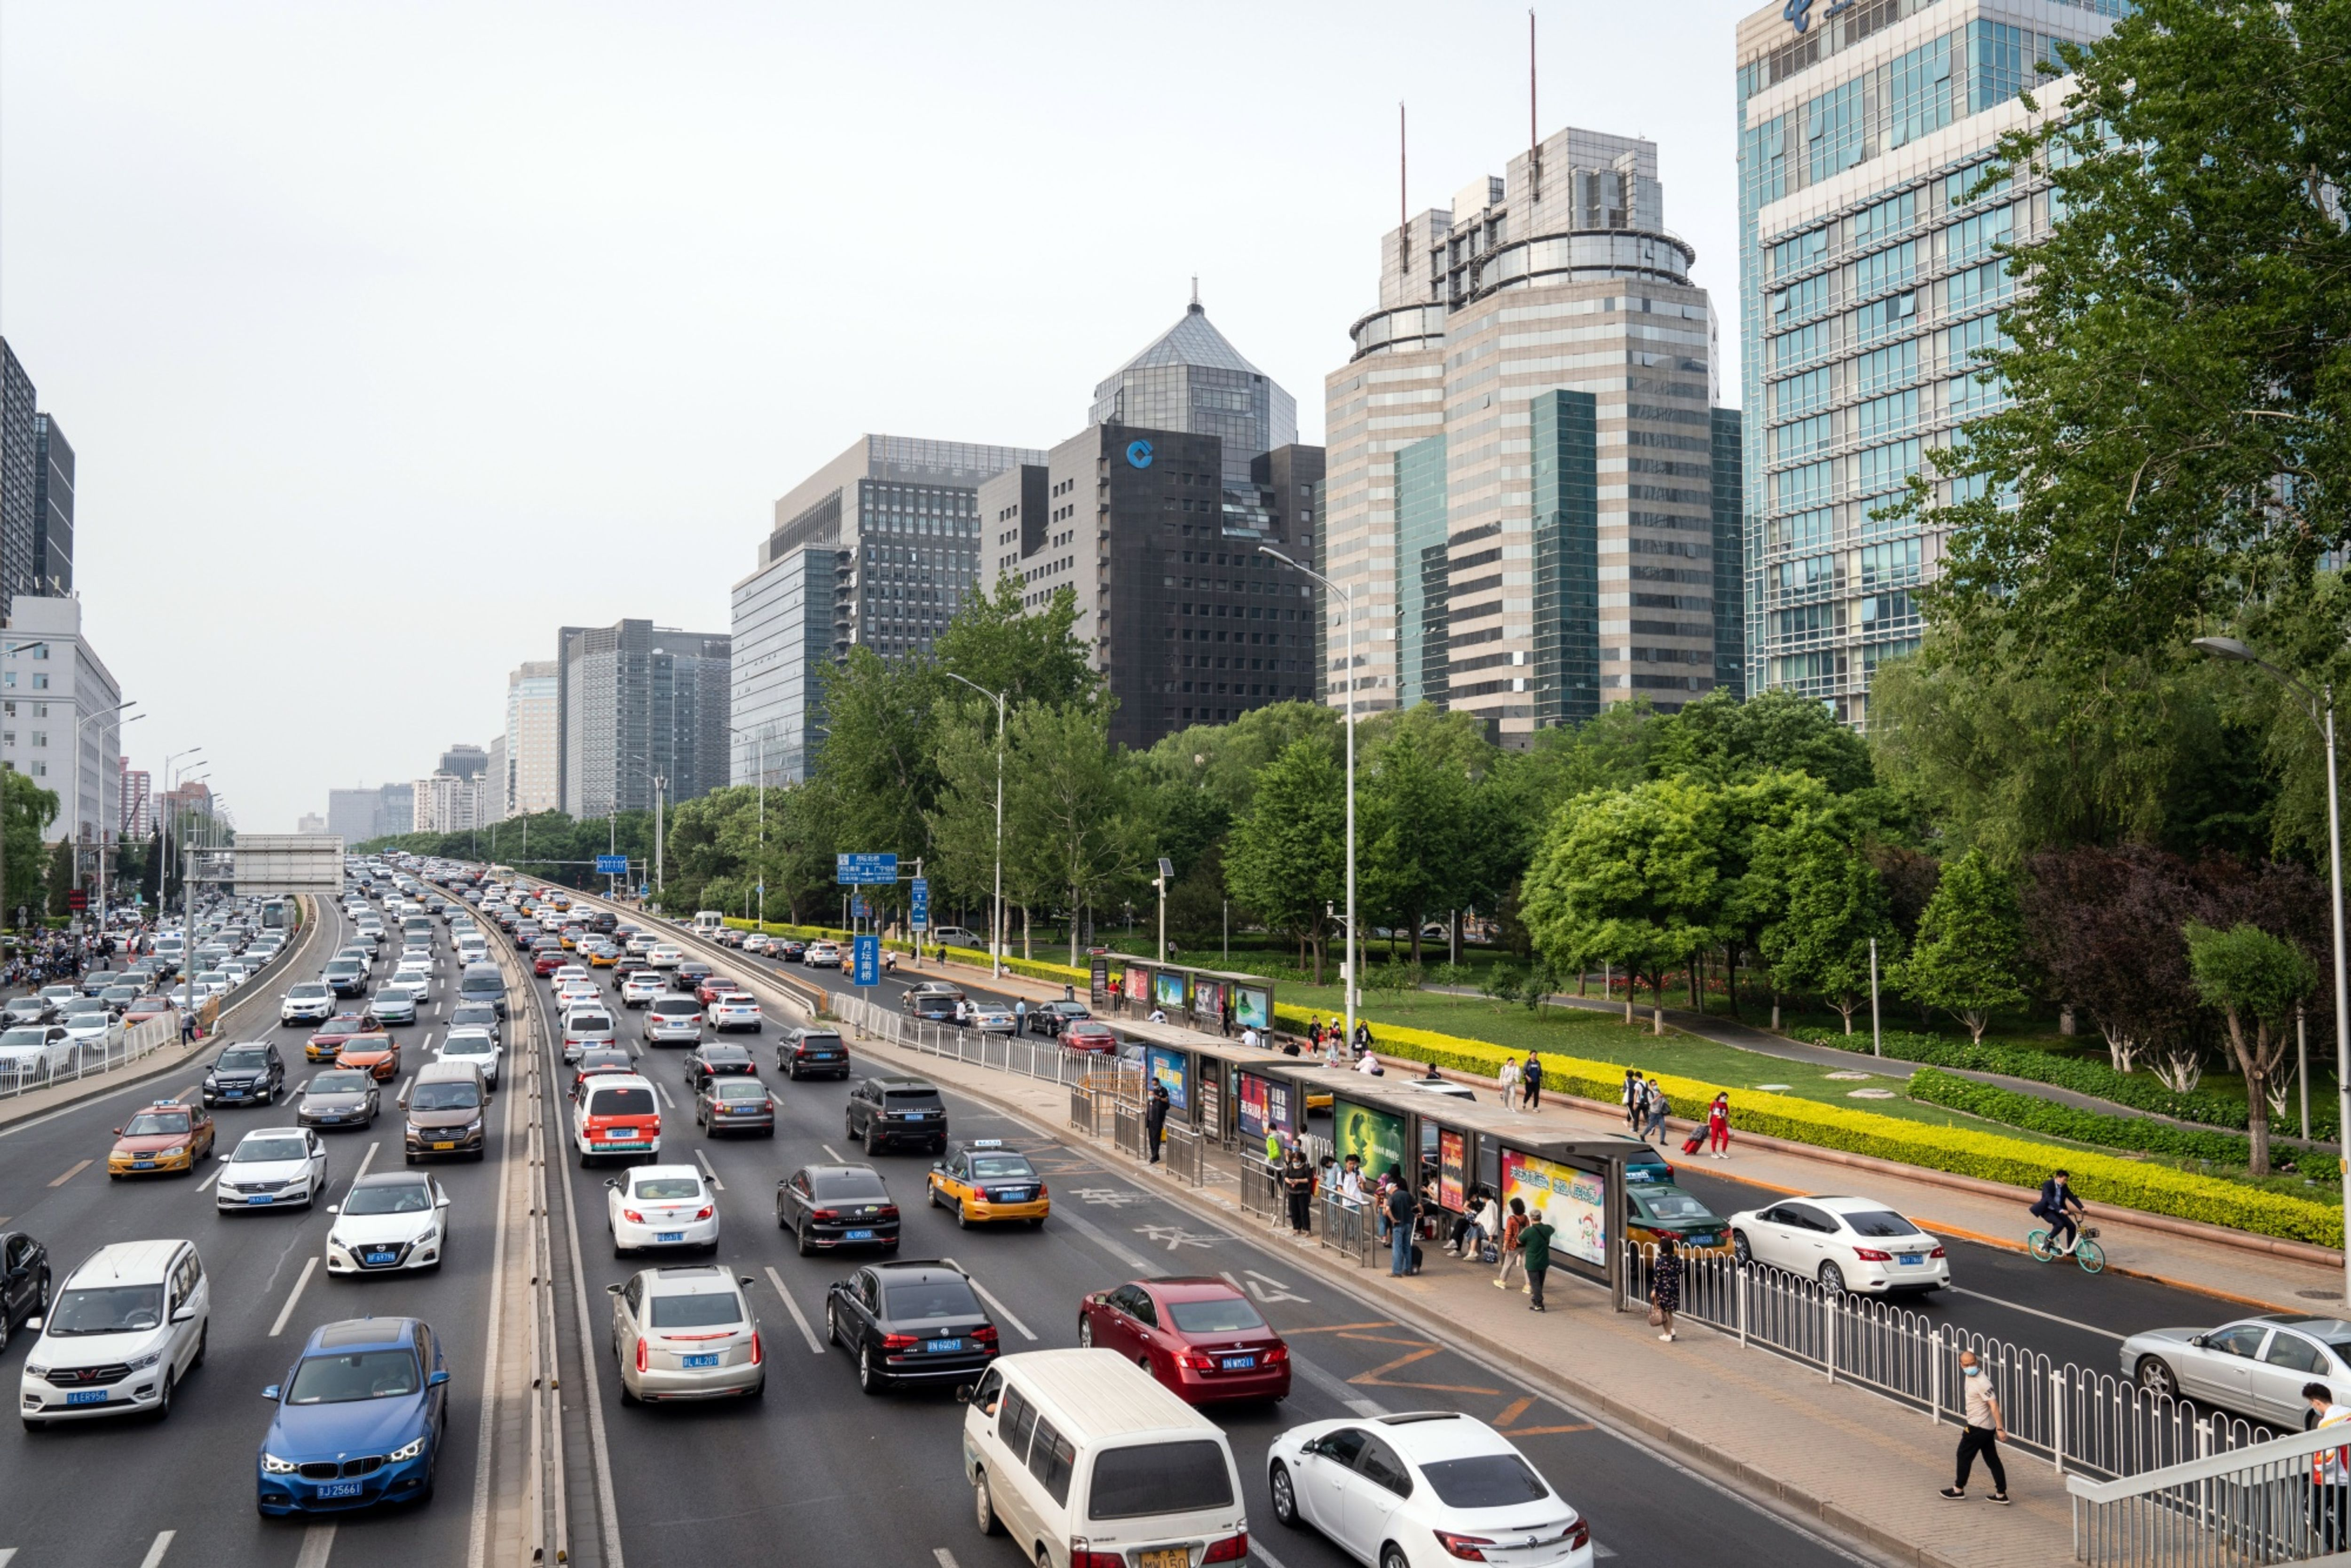 Vehicles travel along a road past buildings near Financial Street in Beijing on May 19. Photo: Bloomberg